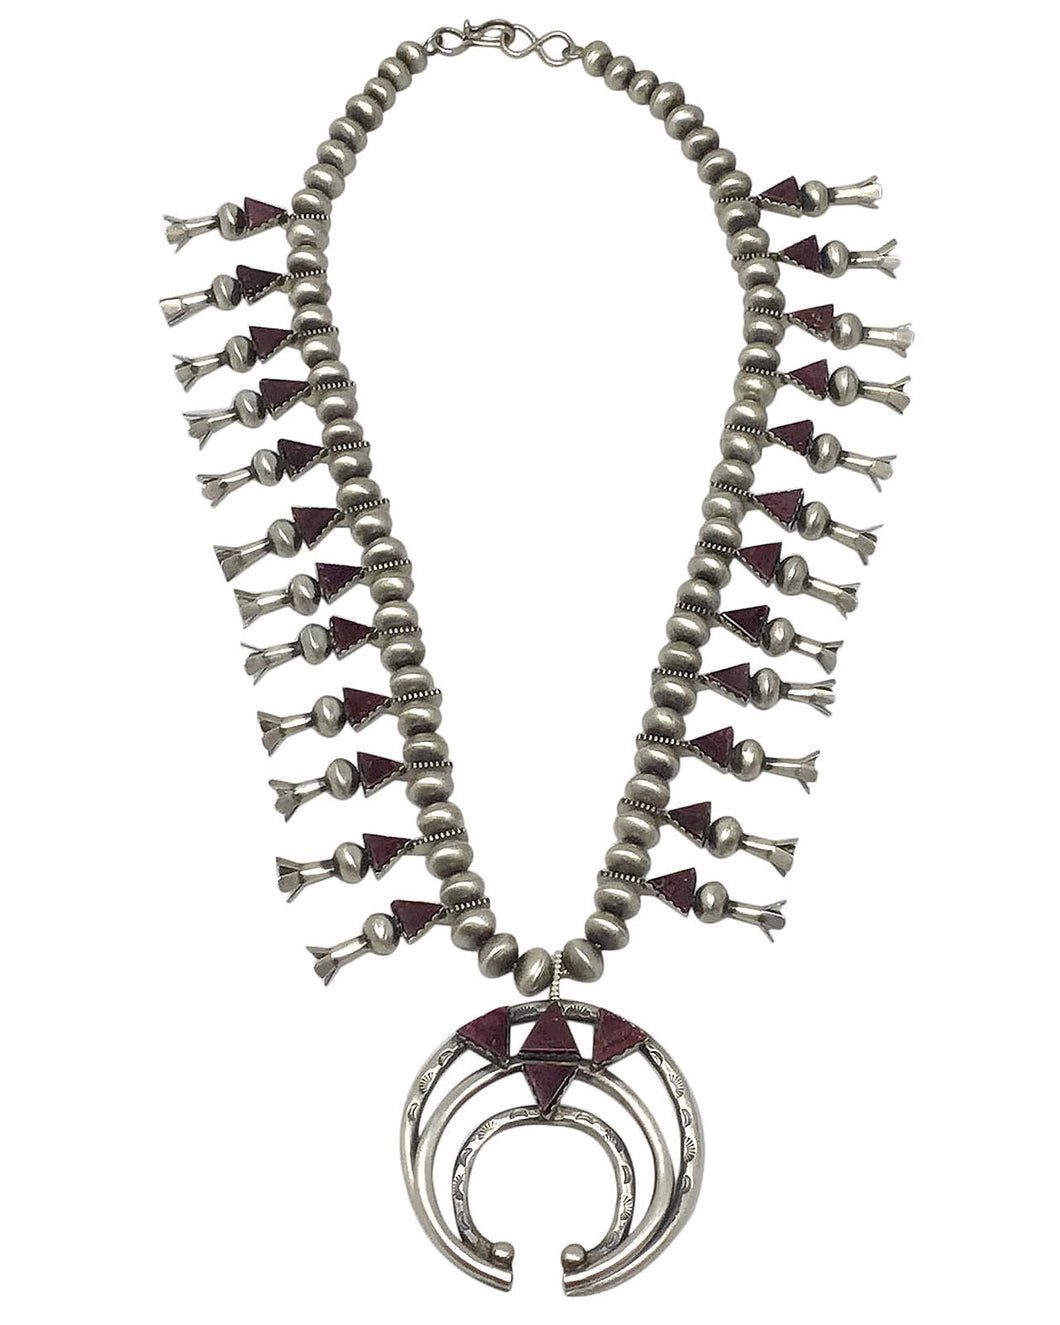 Selena Warner, Squash Blossom Necklace, Purple Spiny Oyster, Navajo Made, 24